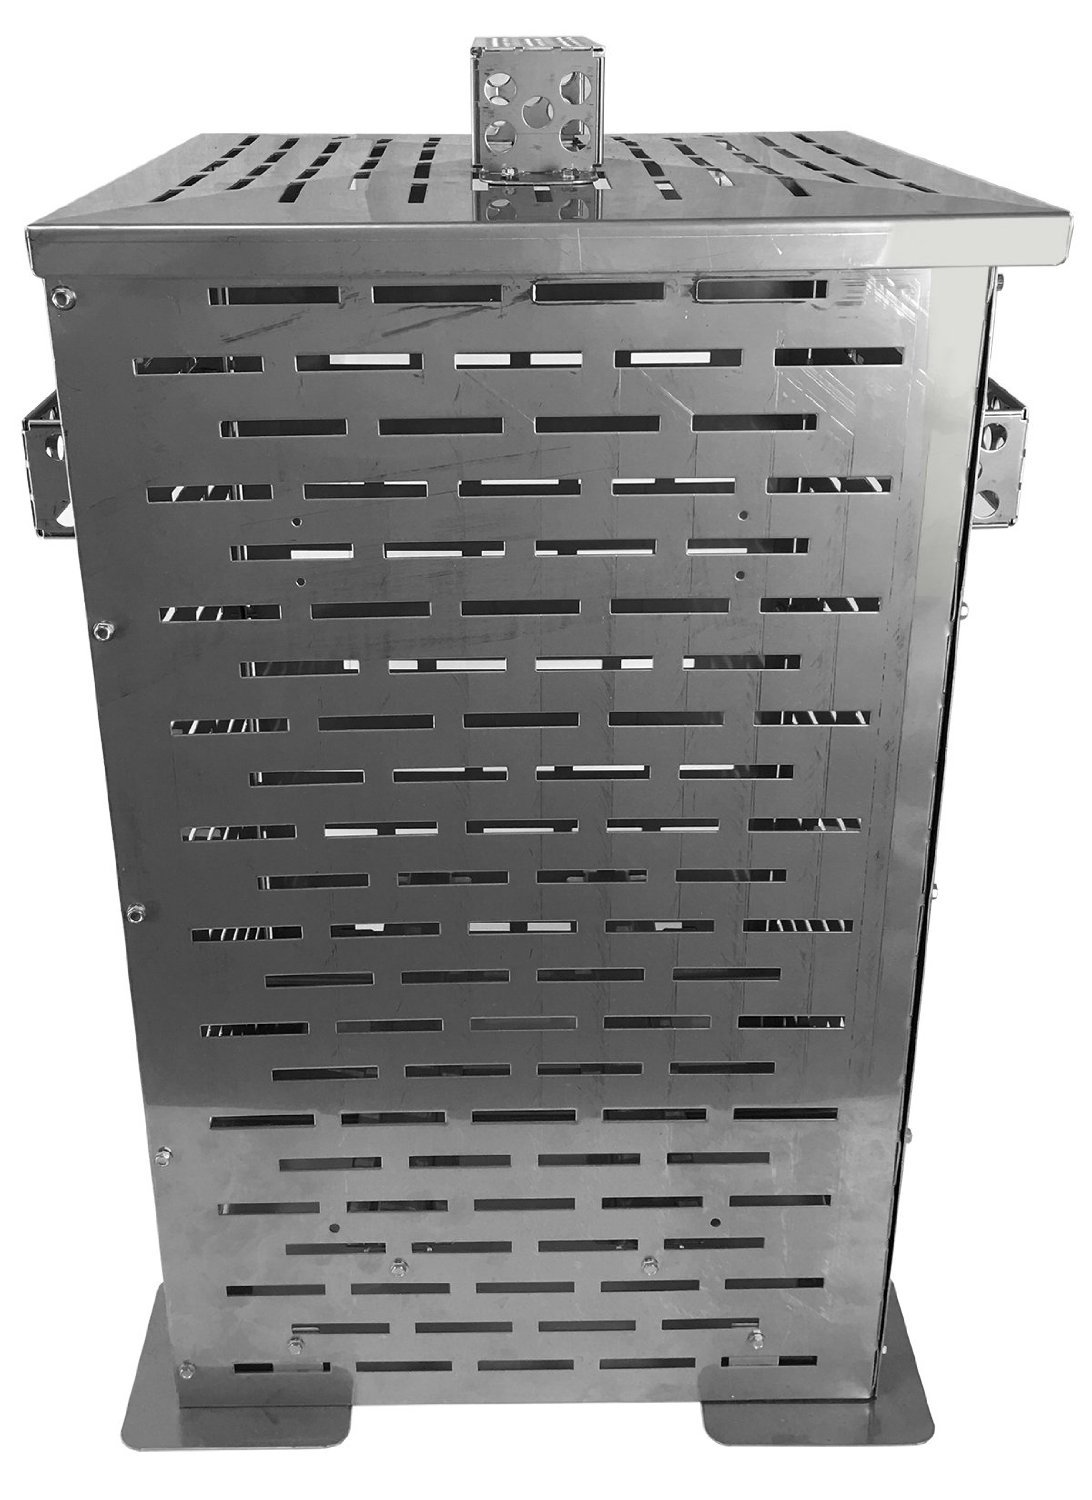 Professional Grade Products 9900000 High Grade Stainless Steel Burn Barrel Incinerator Cage, 24'' x 14'' x 14''